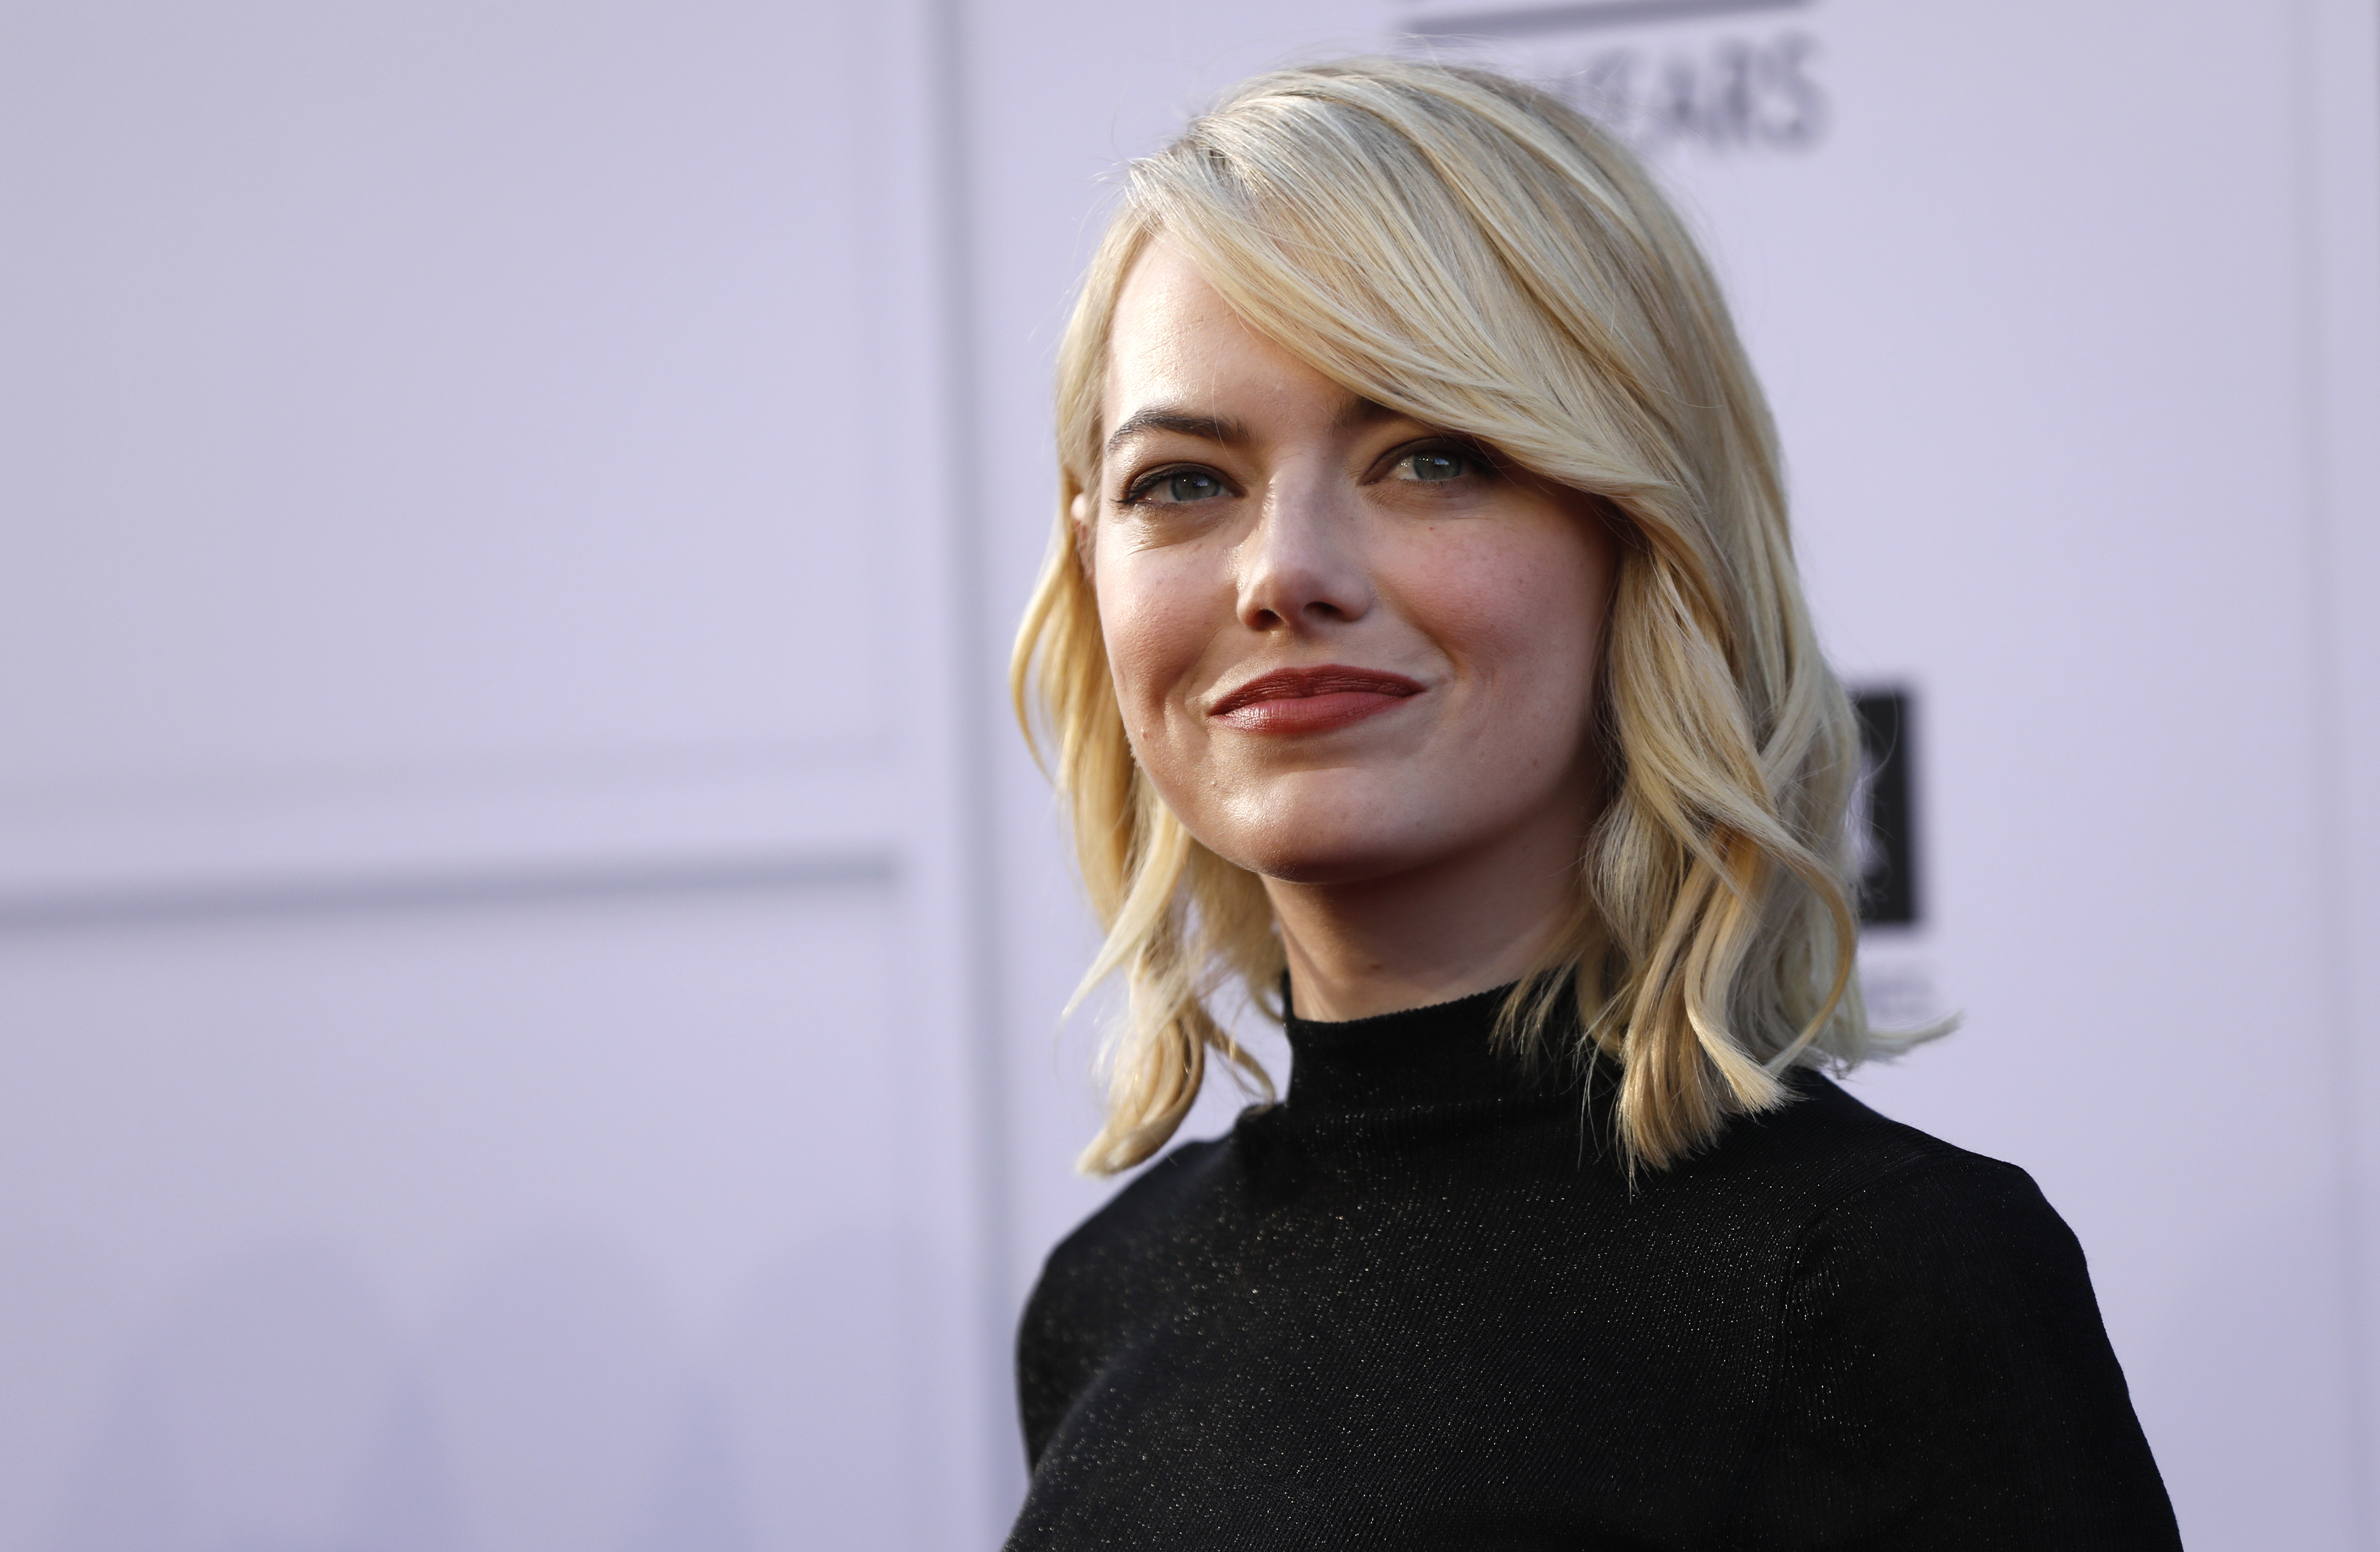 Emma Stone Is Reportedly Dating SNL Writer/Director Dave McCary